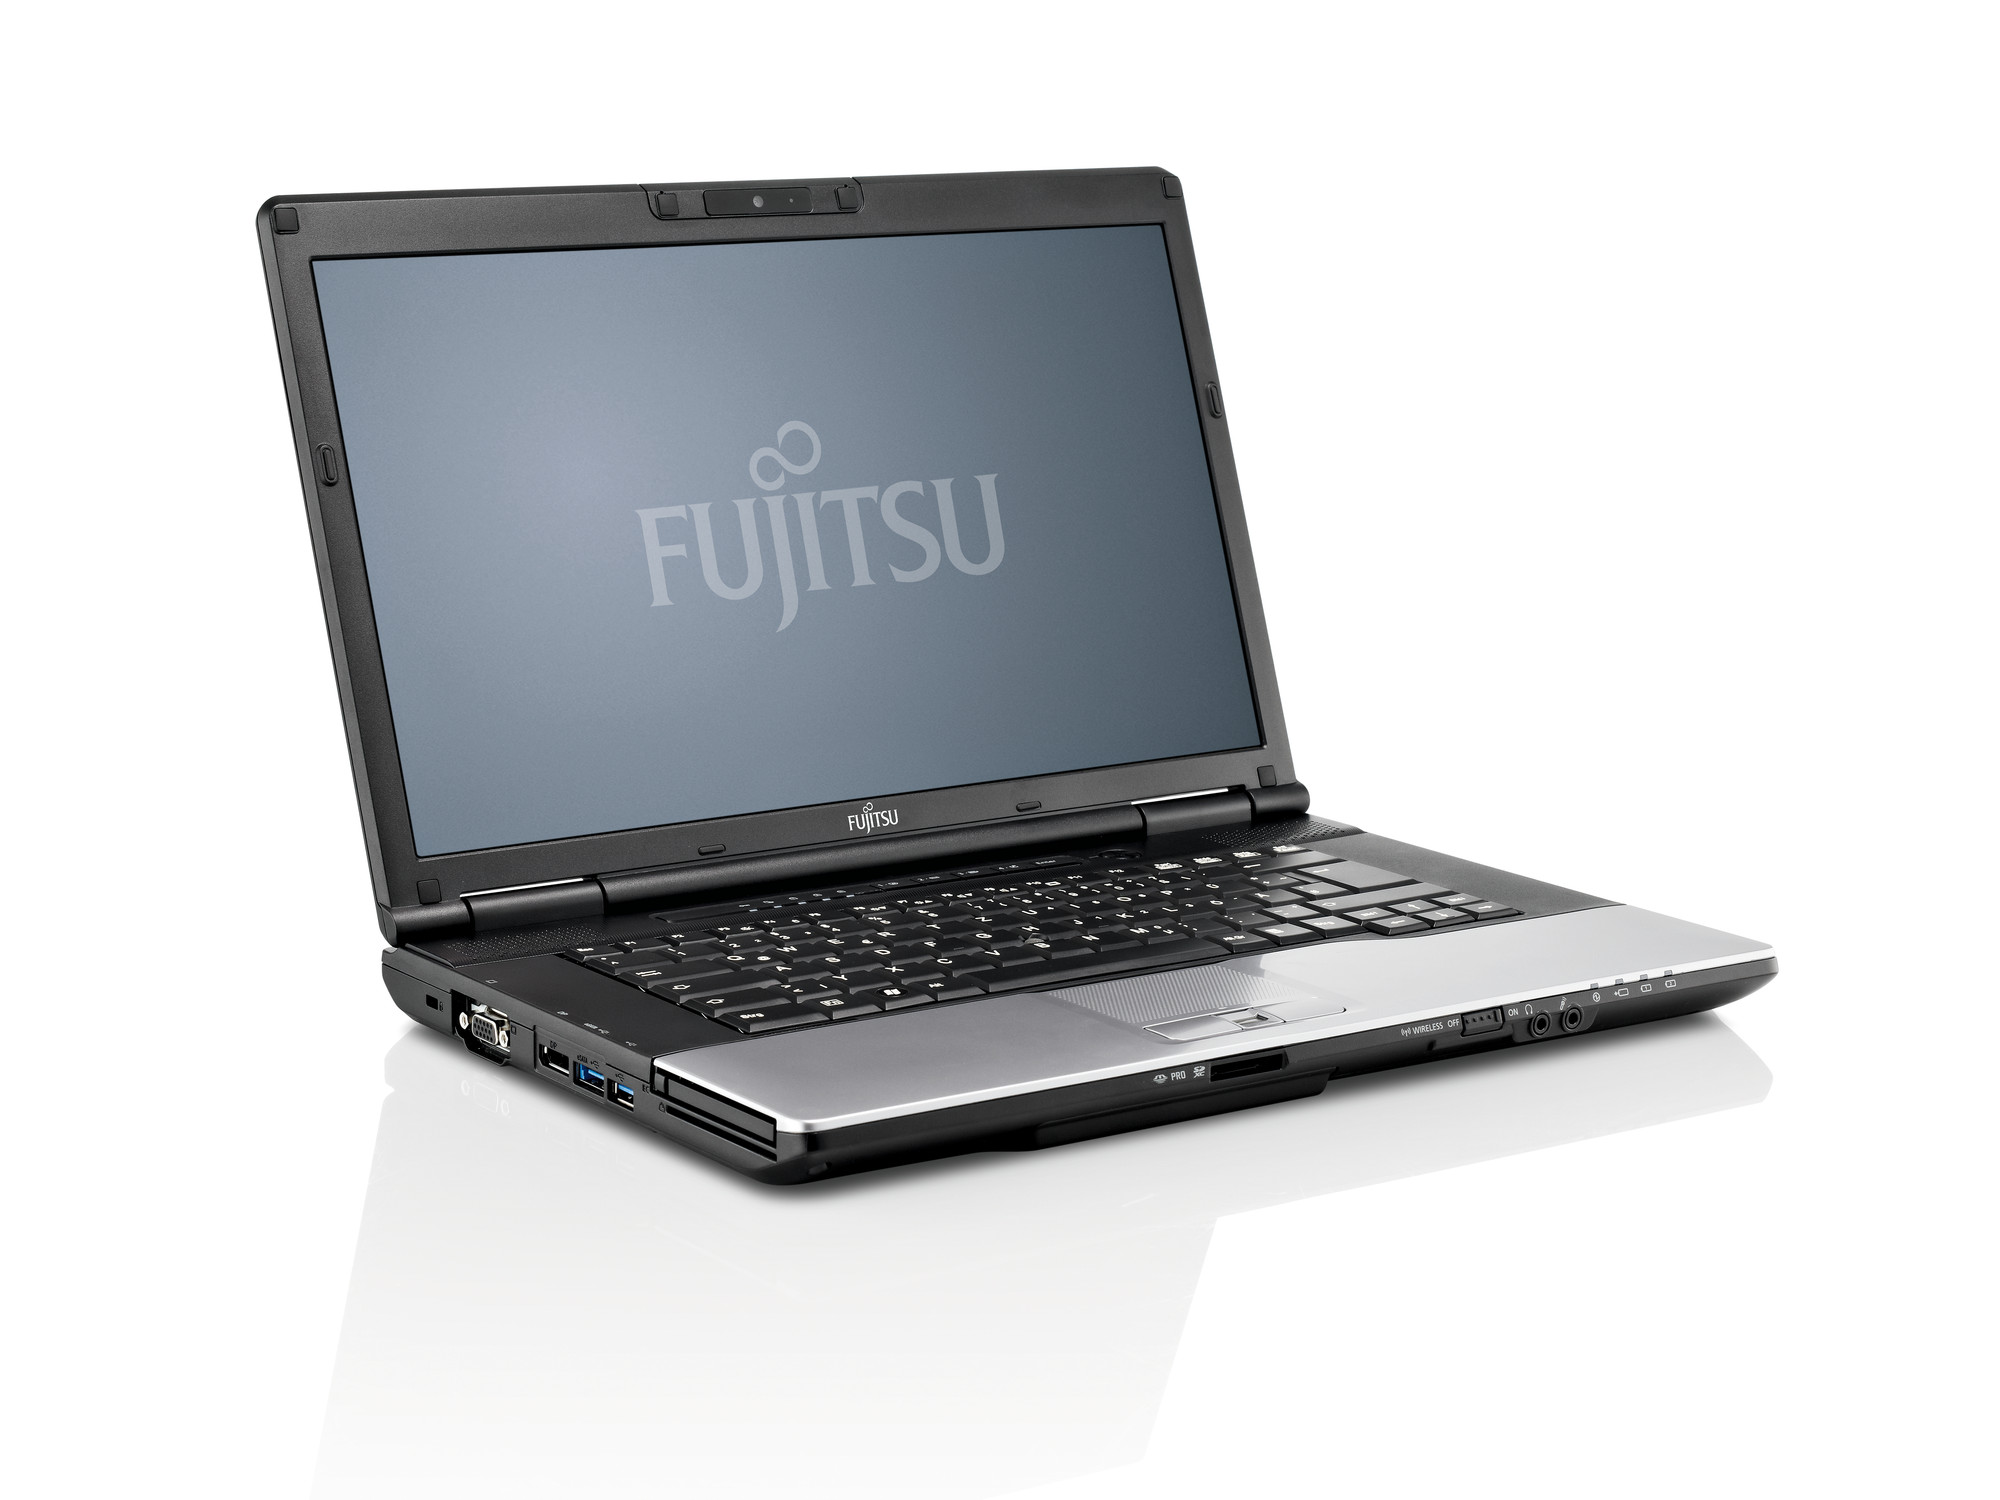 Notebook Fujitsu Lifebook E752 15 6 Zoll Intel Core i7 240GB SSD Festplatte 8GB Speicher Win 10 Laptop S K352 V100